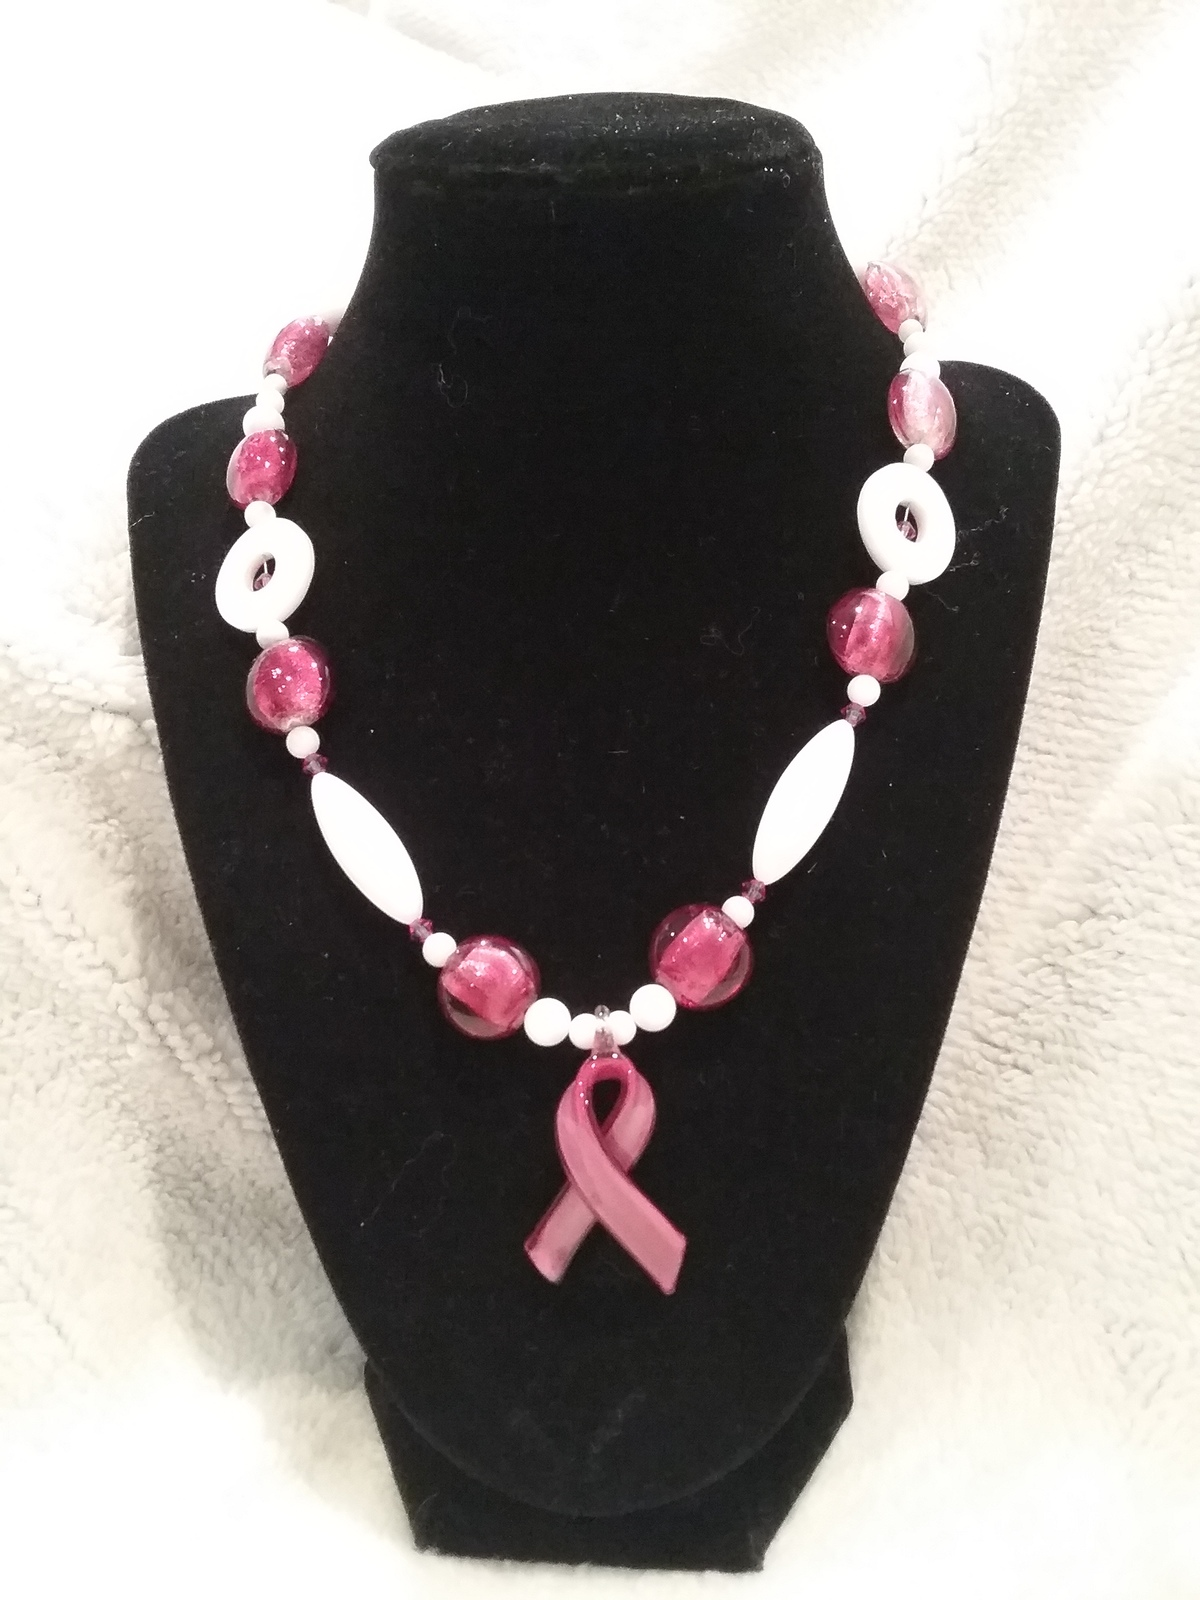 Breast Cancer Awareness Pendant Necklace